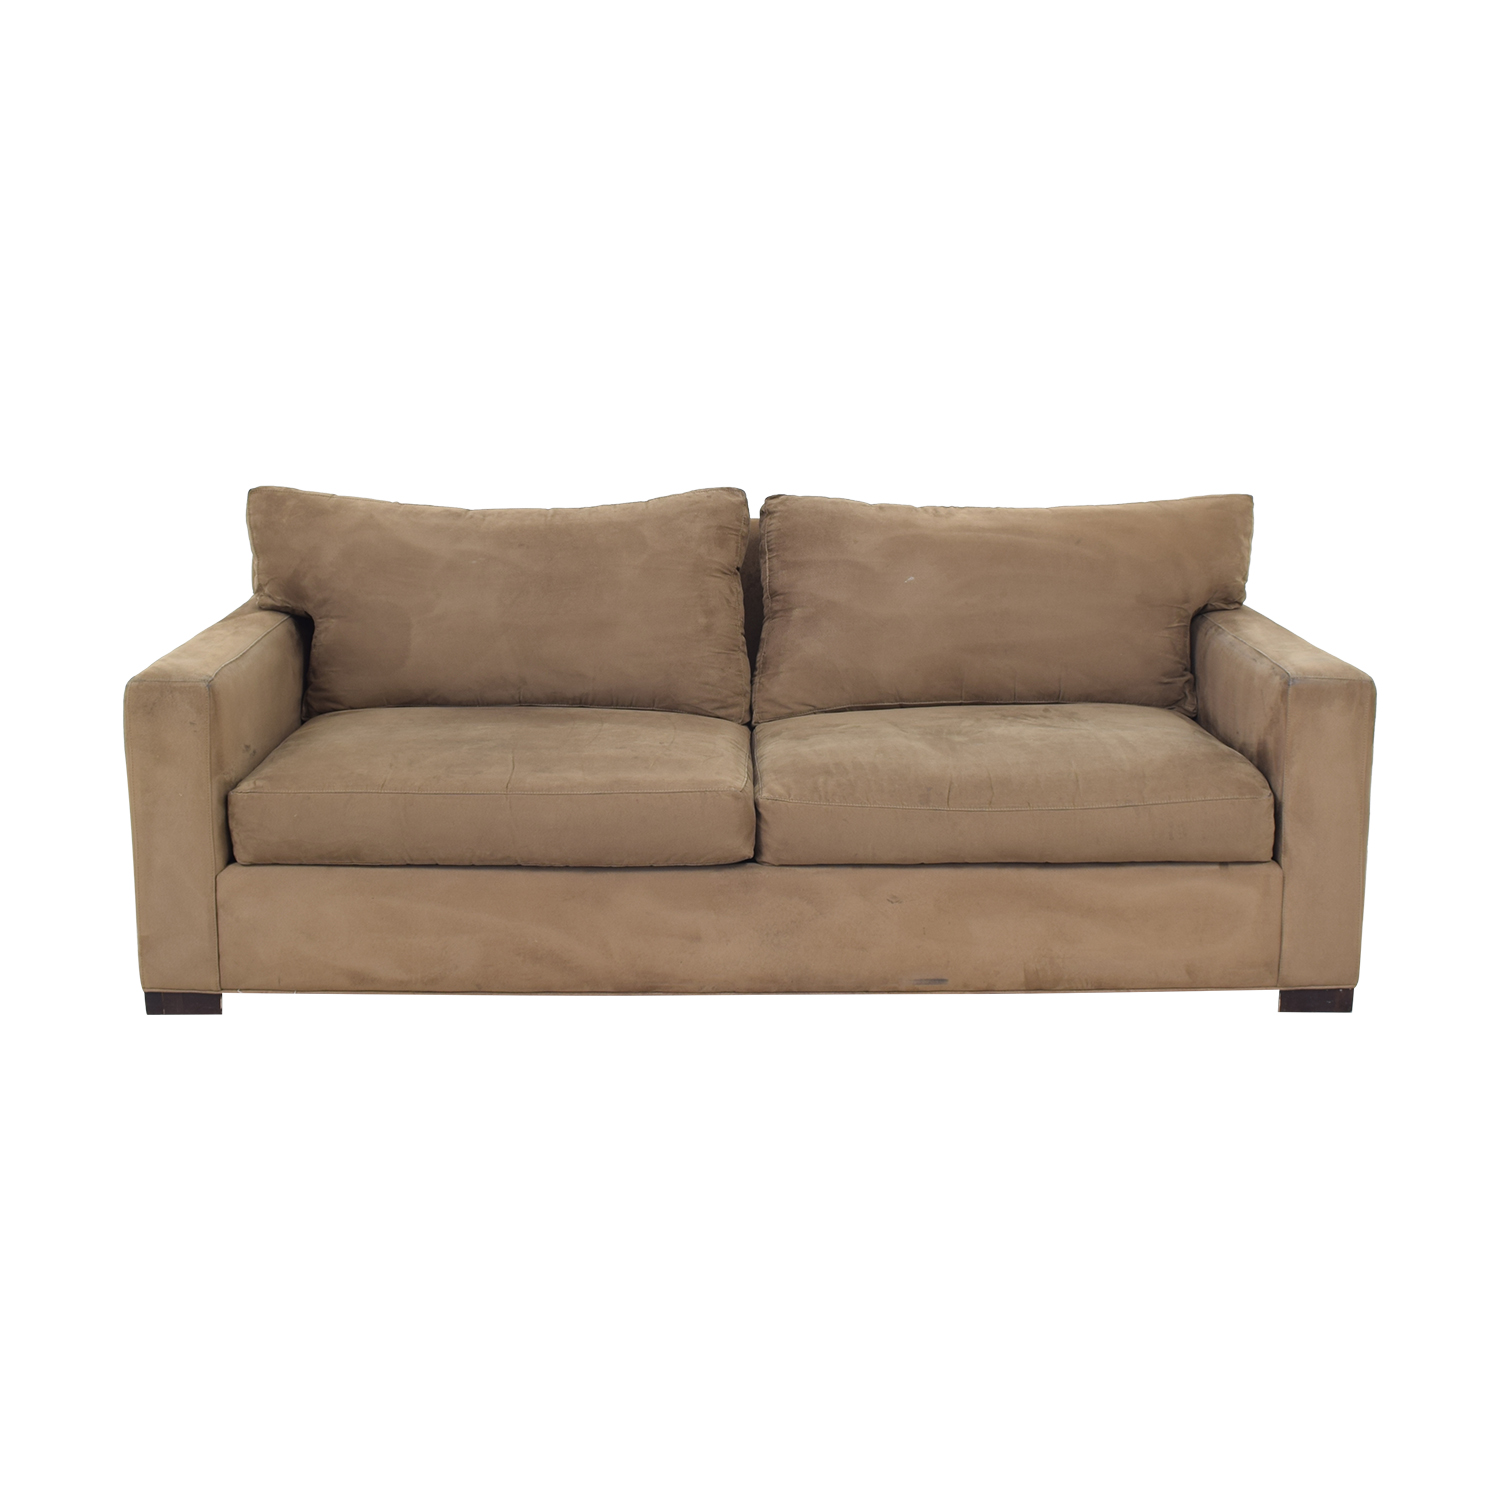 Crate & Barrel Crate & Barrel Axis 2-Seat Sofa brown